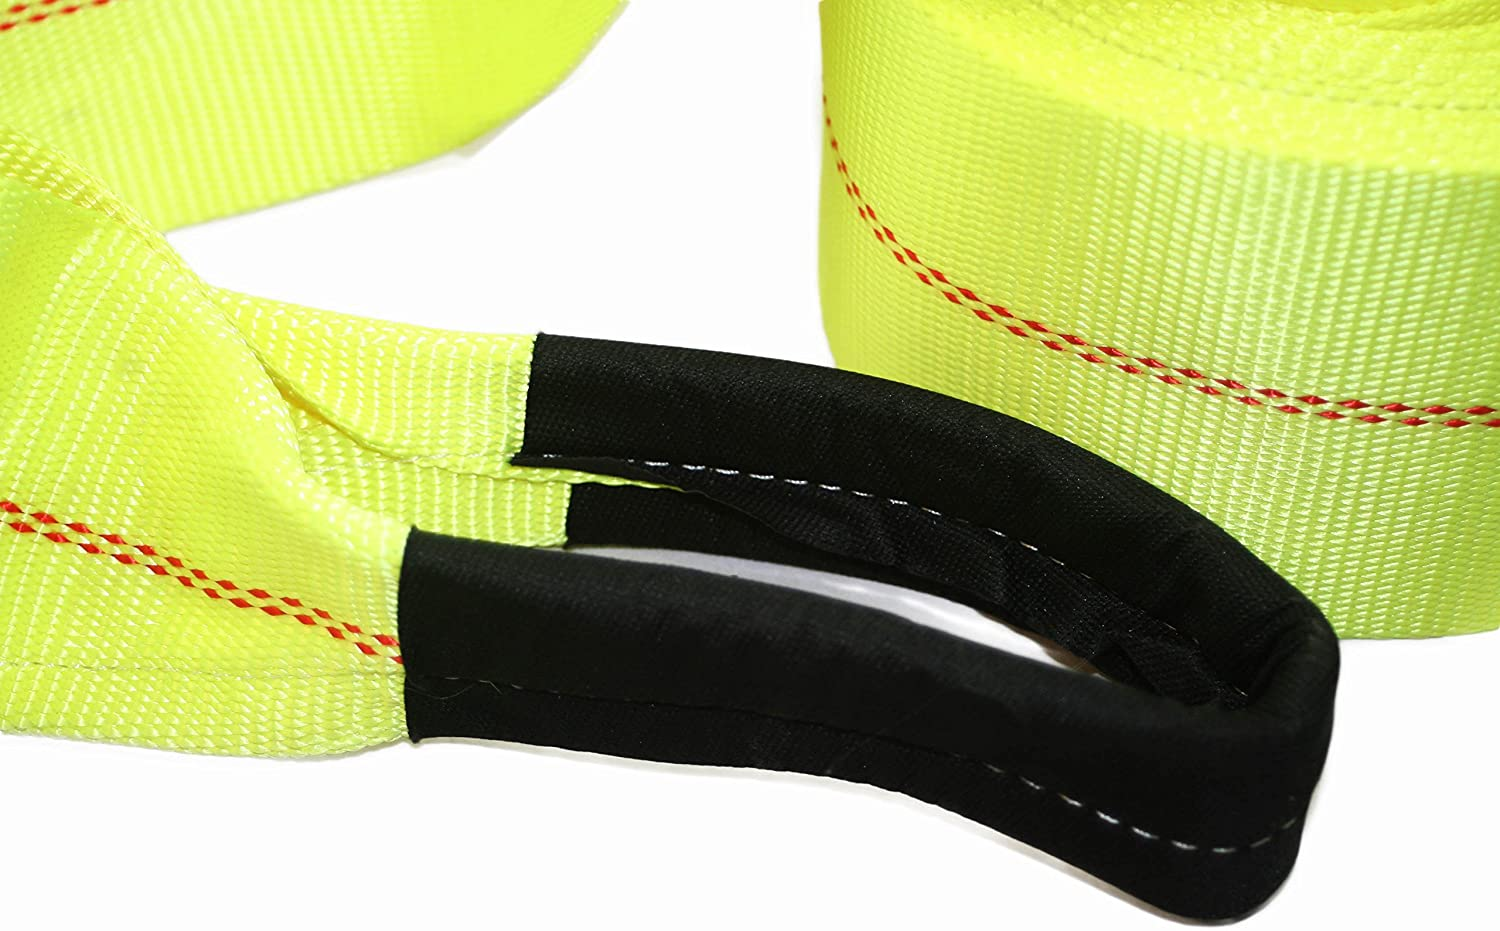 ABN Tow Winch Rope with Loops 30 Feet x 4in Offroad Vehicle Recovery Strap 20,000 lbs pound Towing Capacity